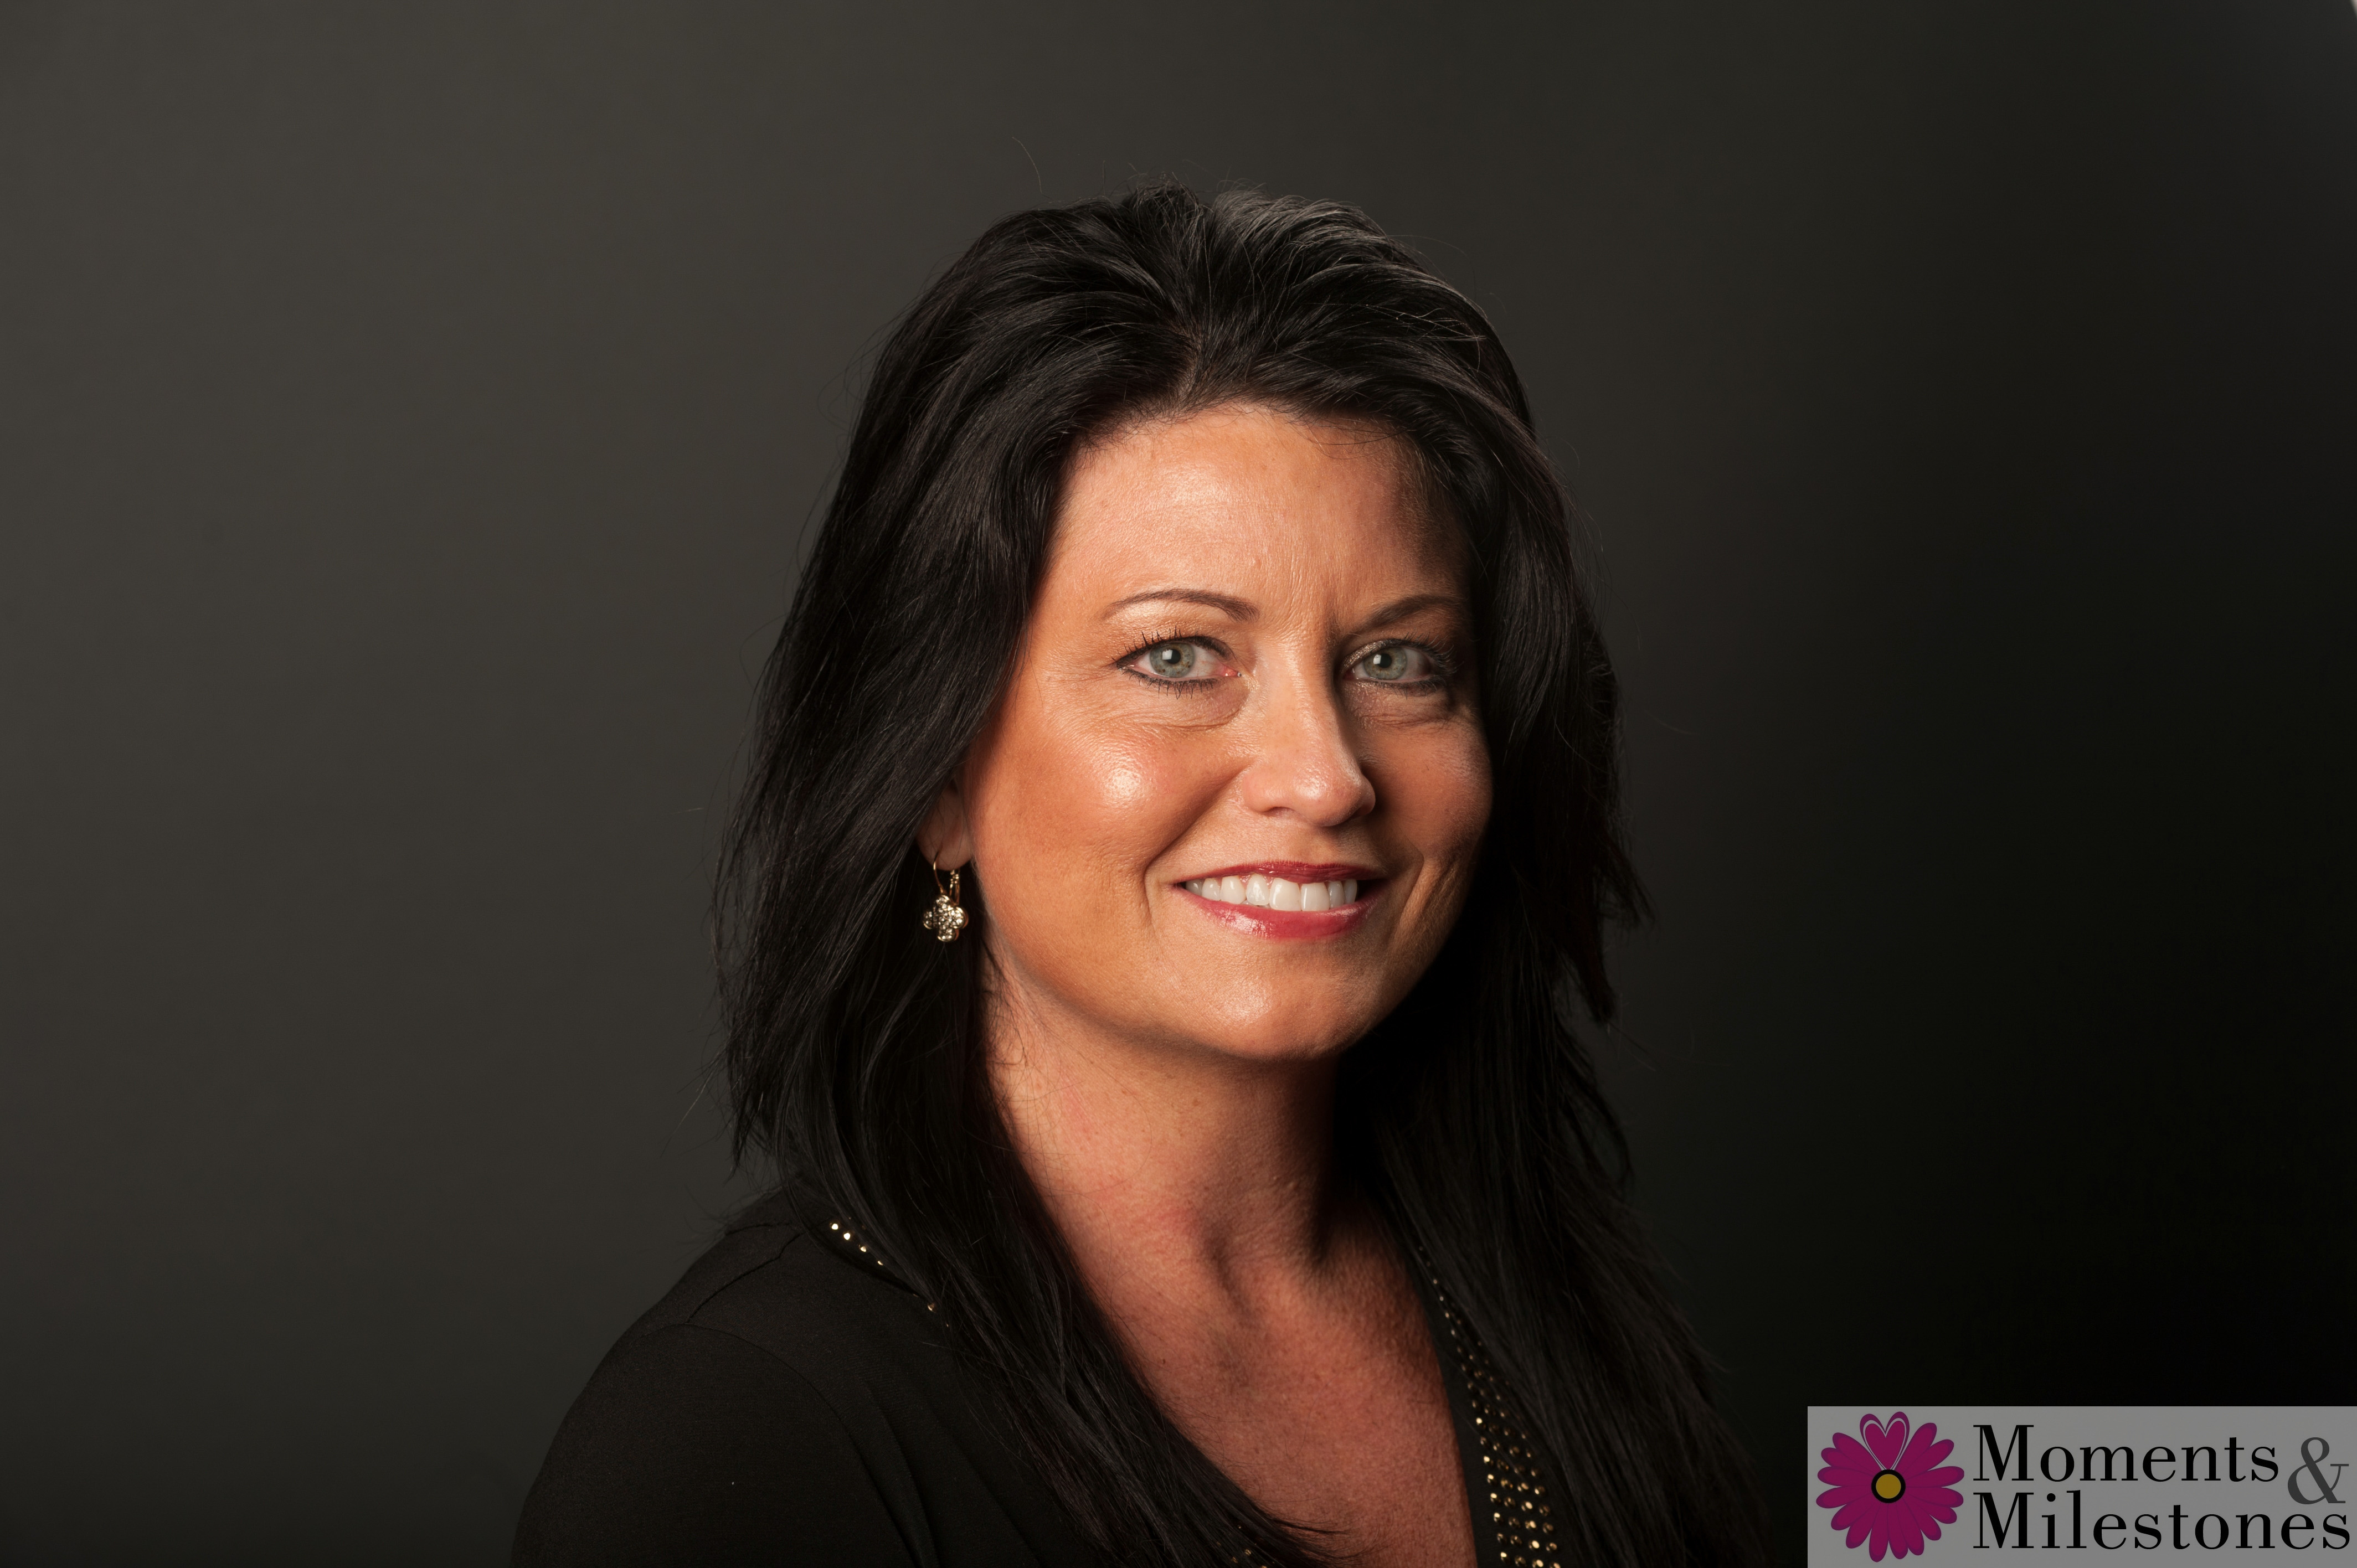 Headshots & Red Carpet Convention Photography & Planning